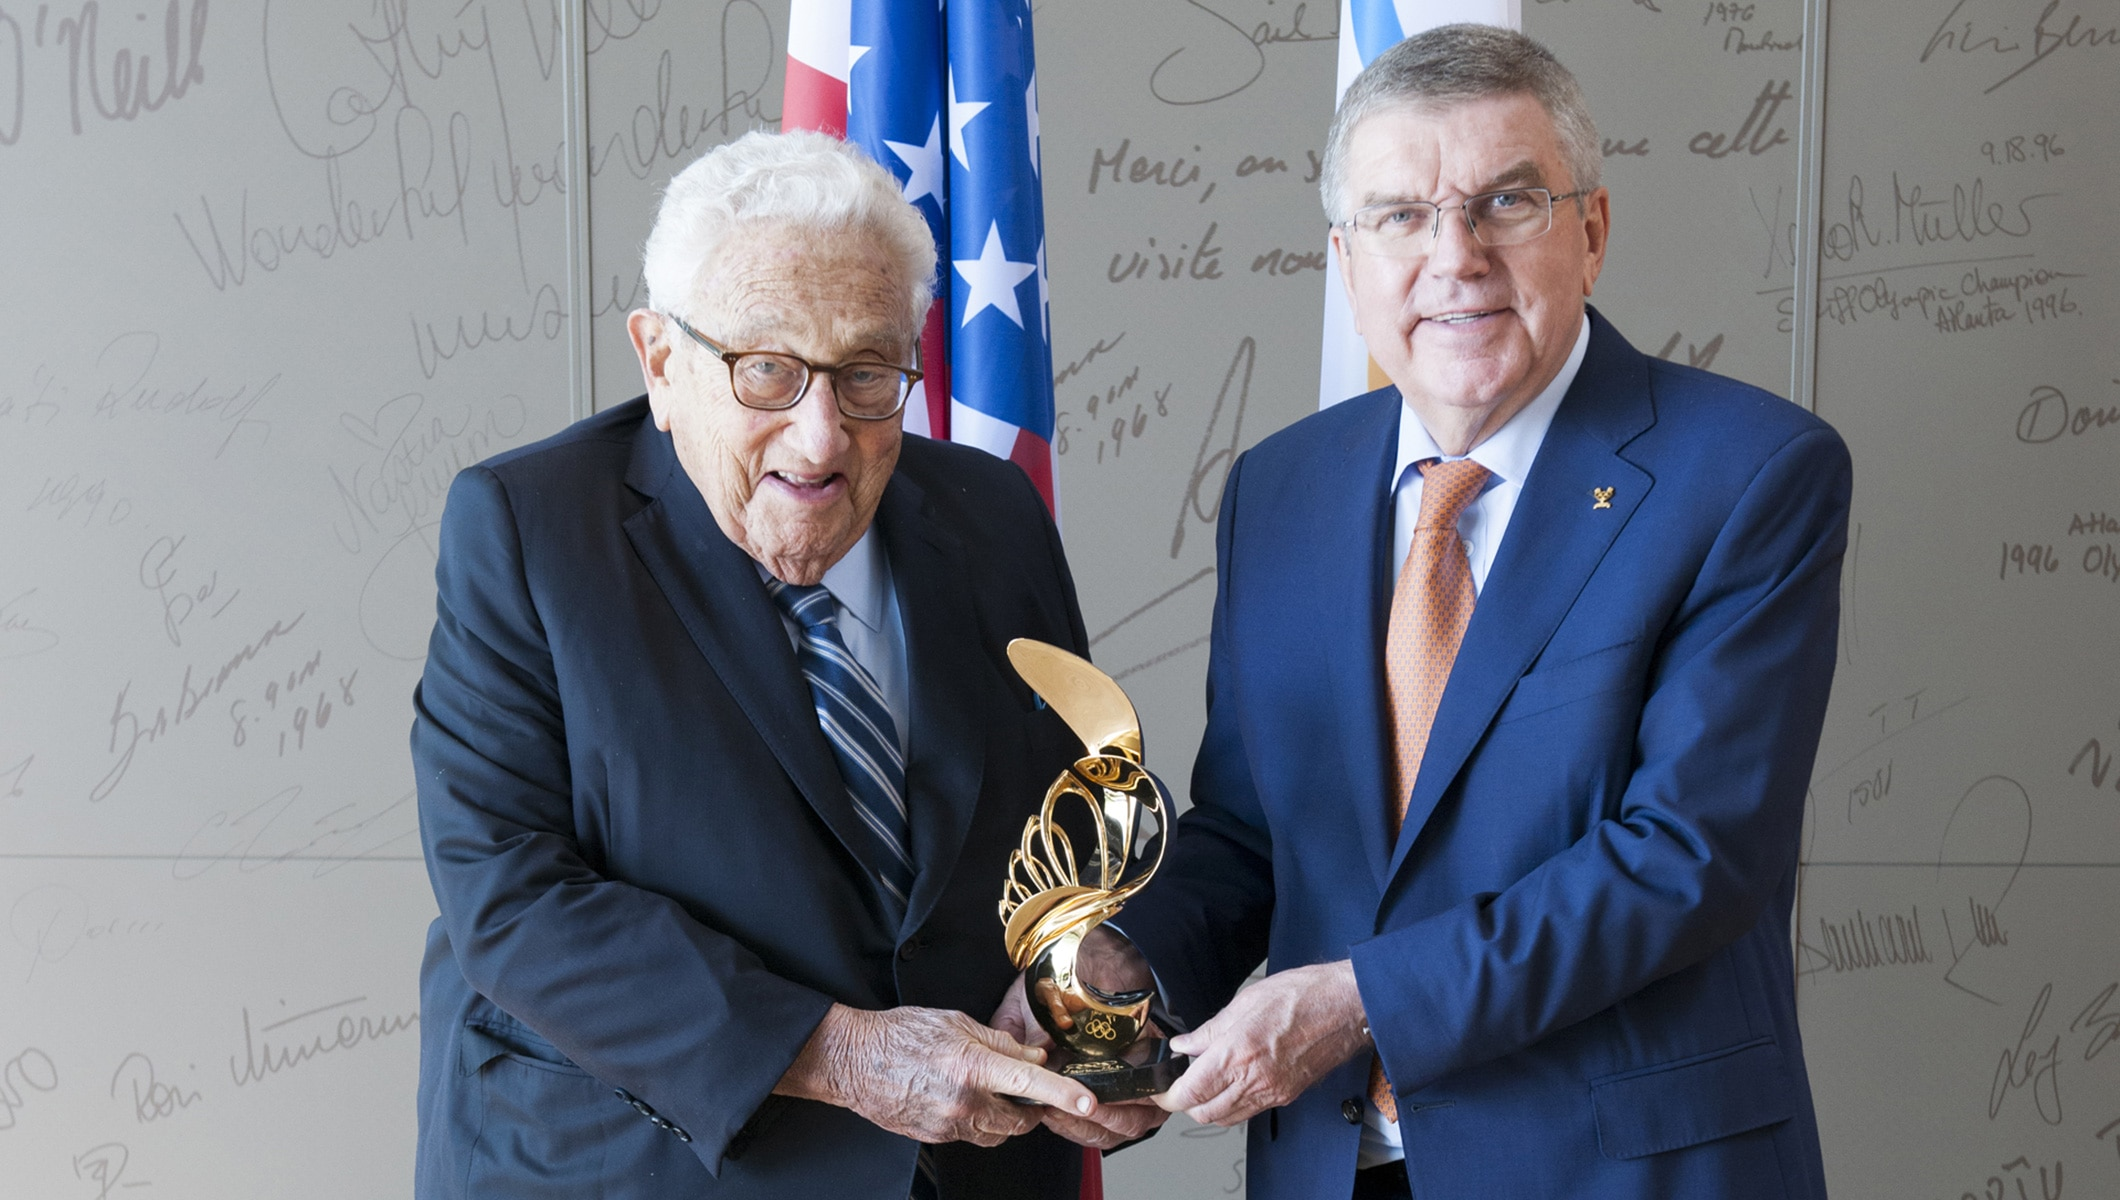 Meeting with Henry Kissinger and Thomas Bach, International Olympic Committee President